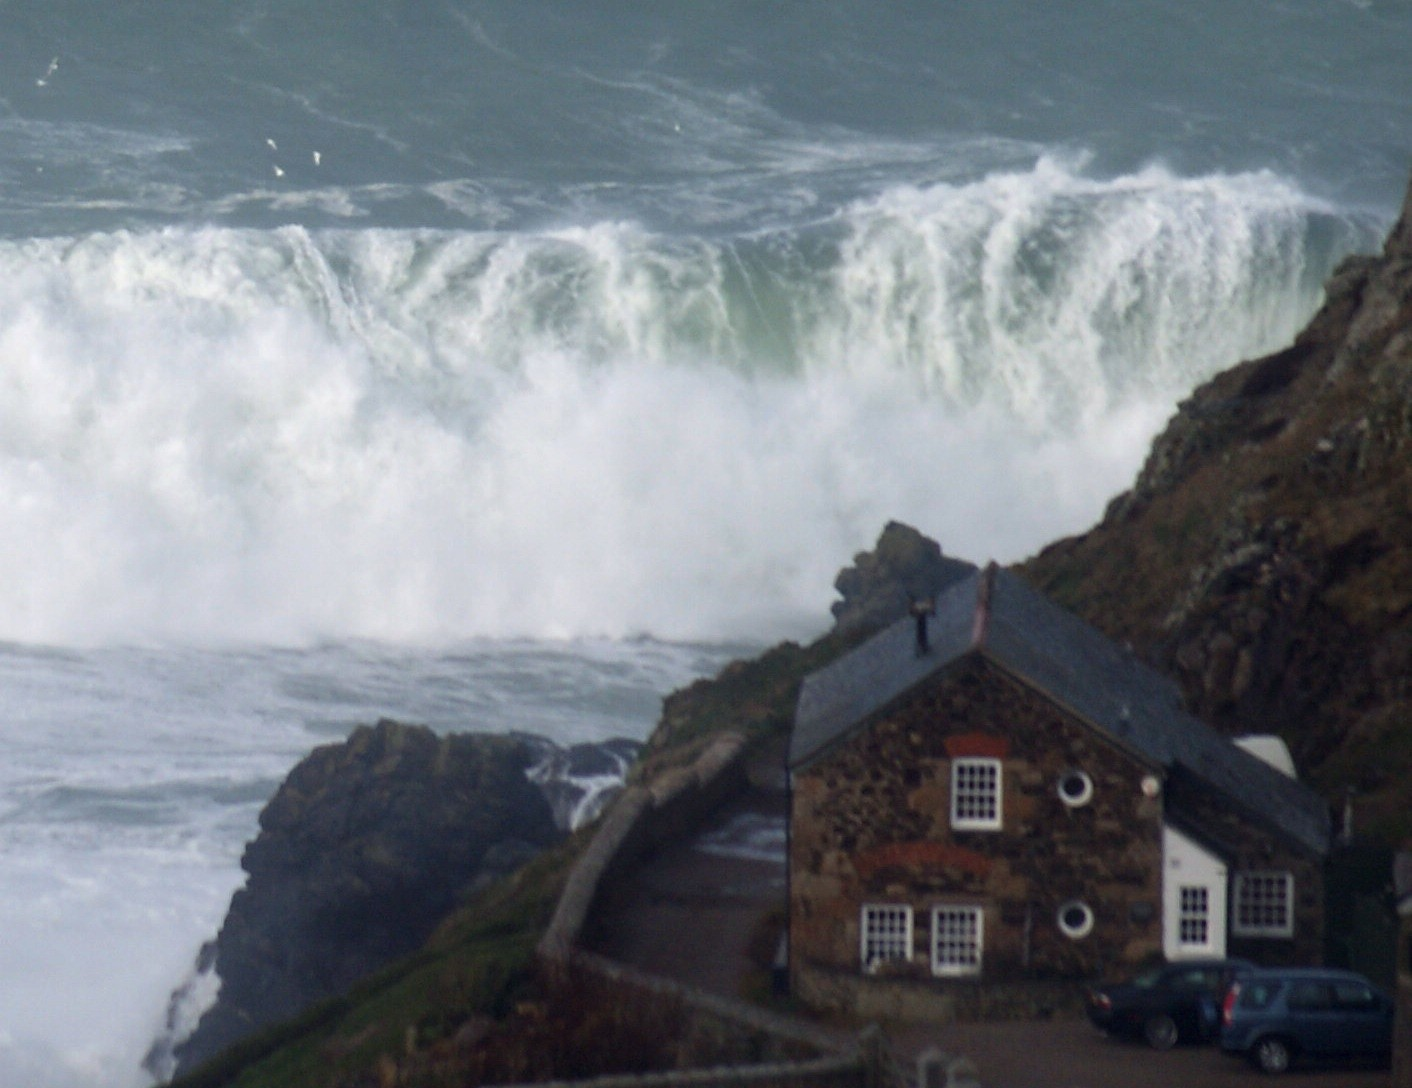 Poontang surfer's photo of Sennen